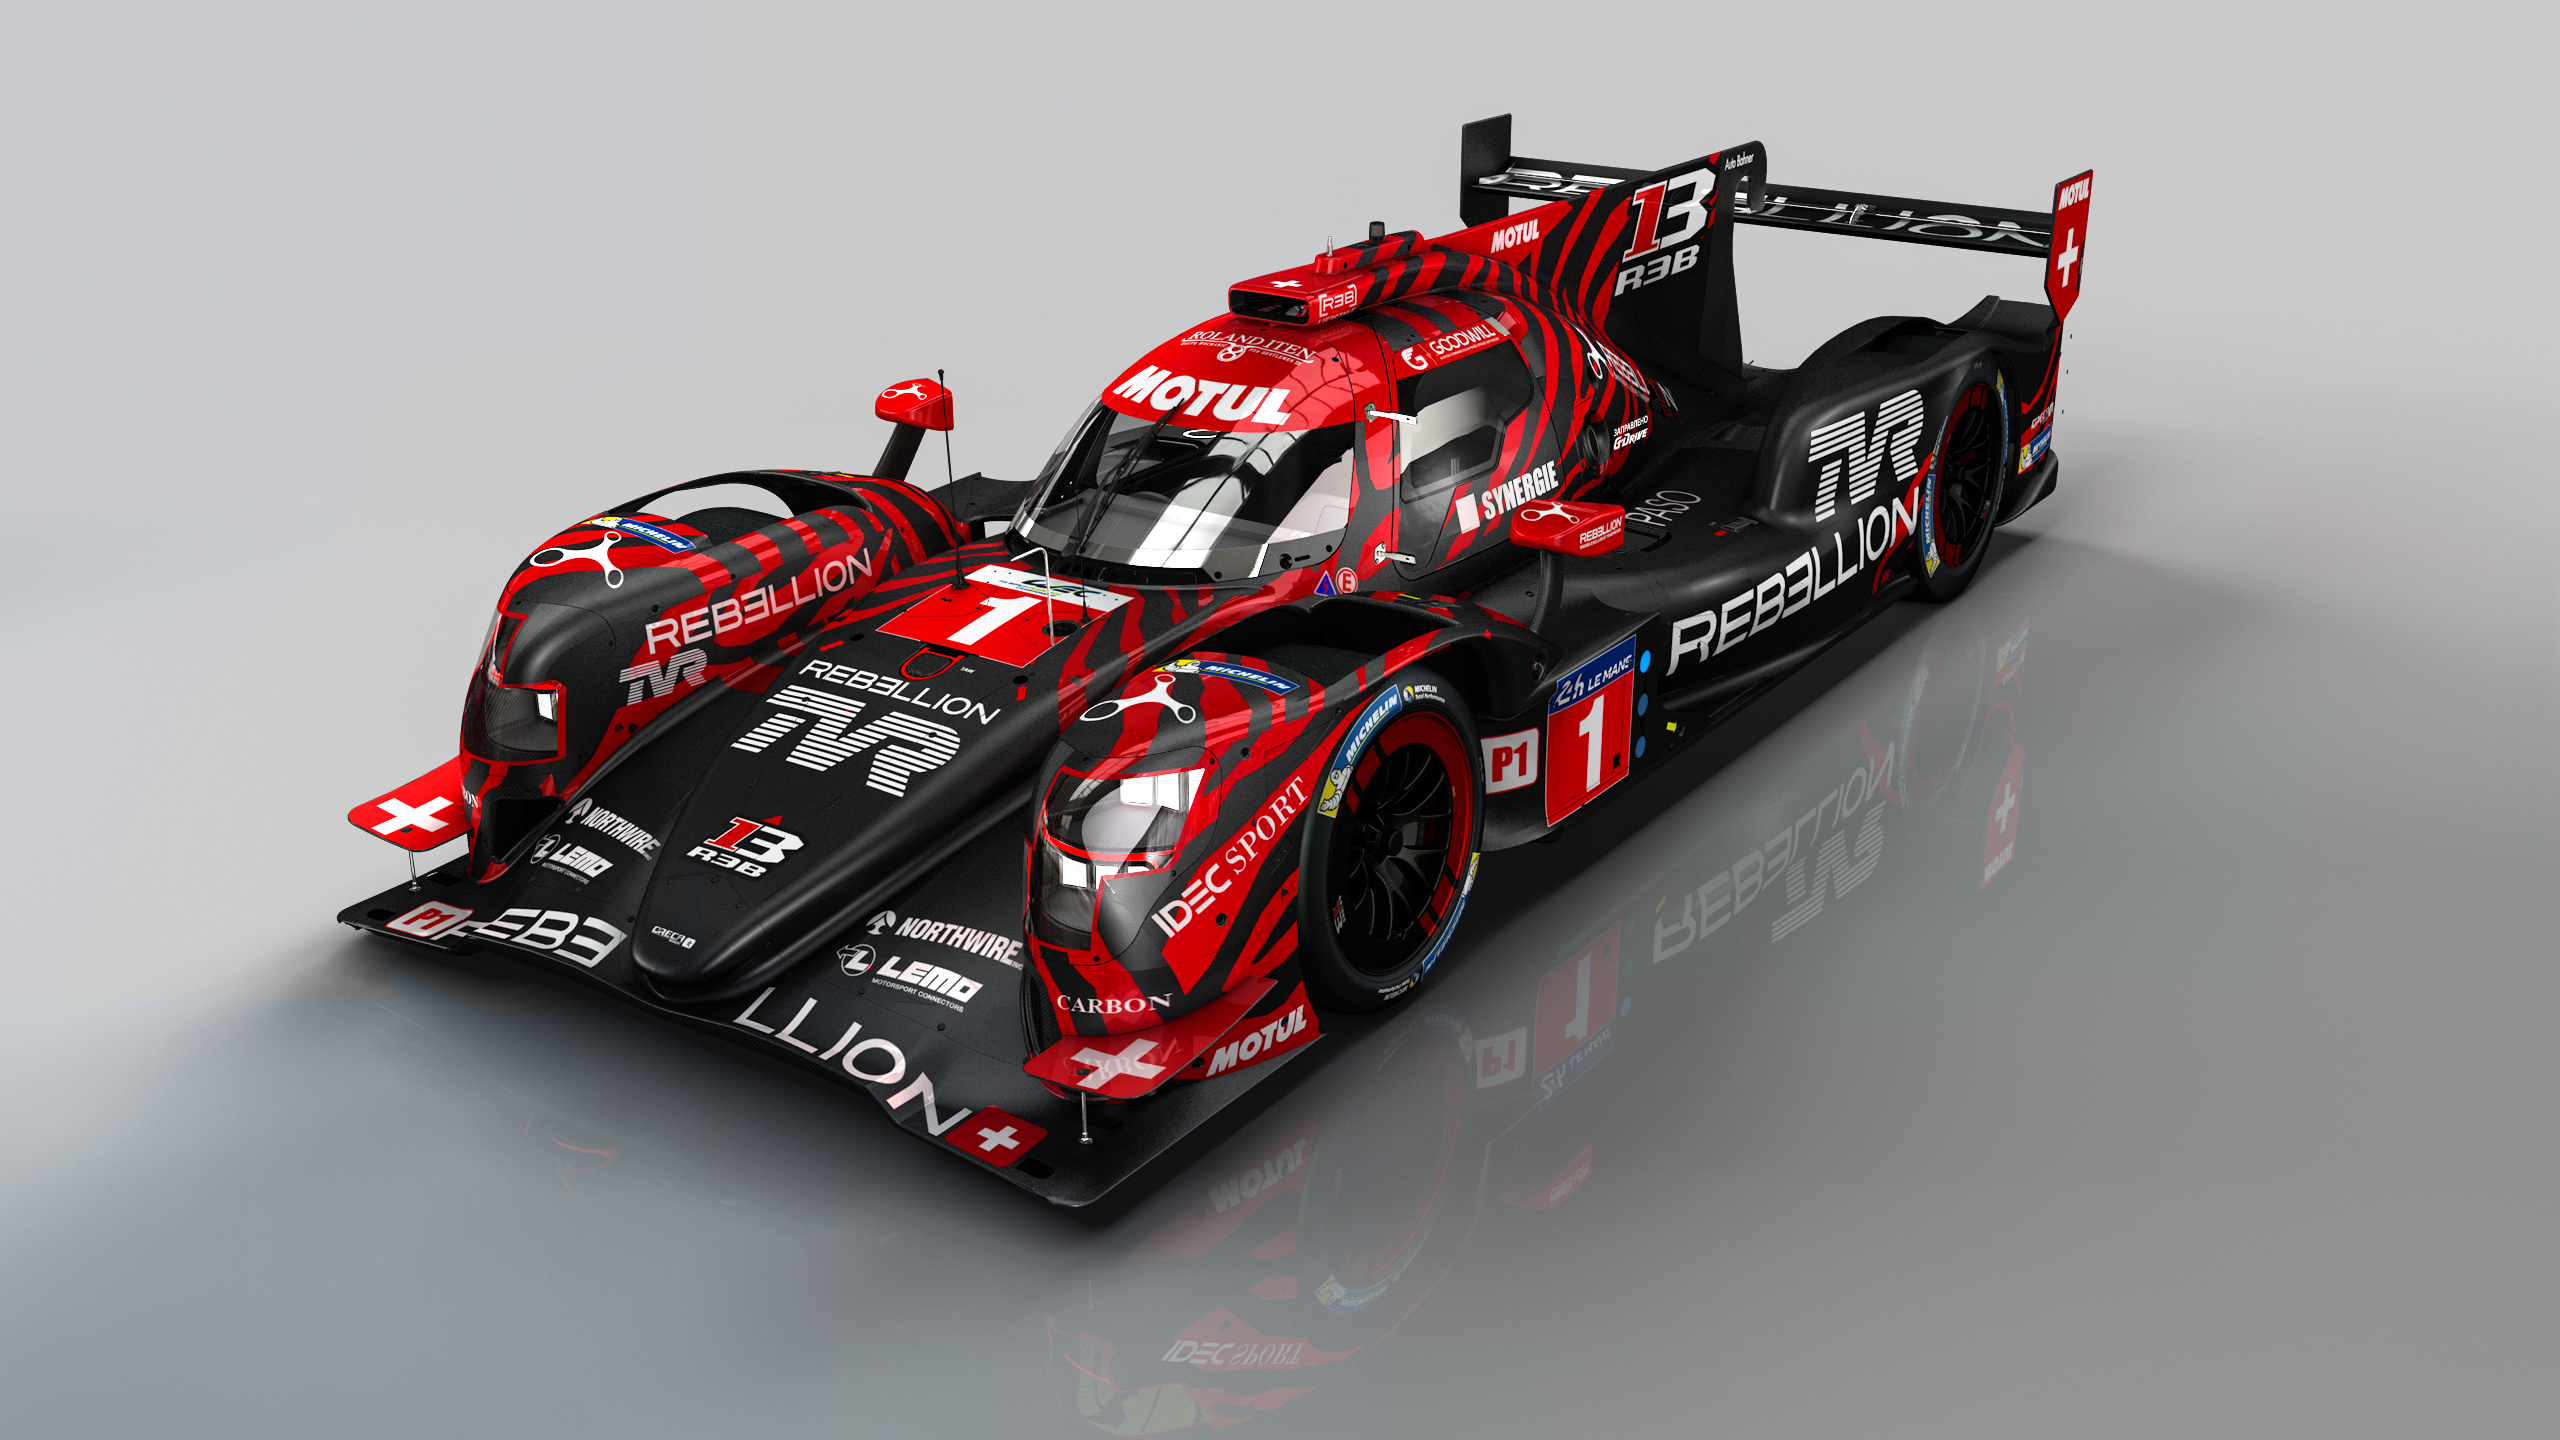 Rebellion R13 Race Car Wallpaper Hd Car Wallpapers Id 11280